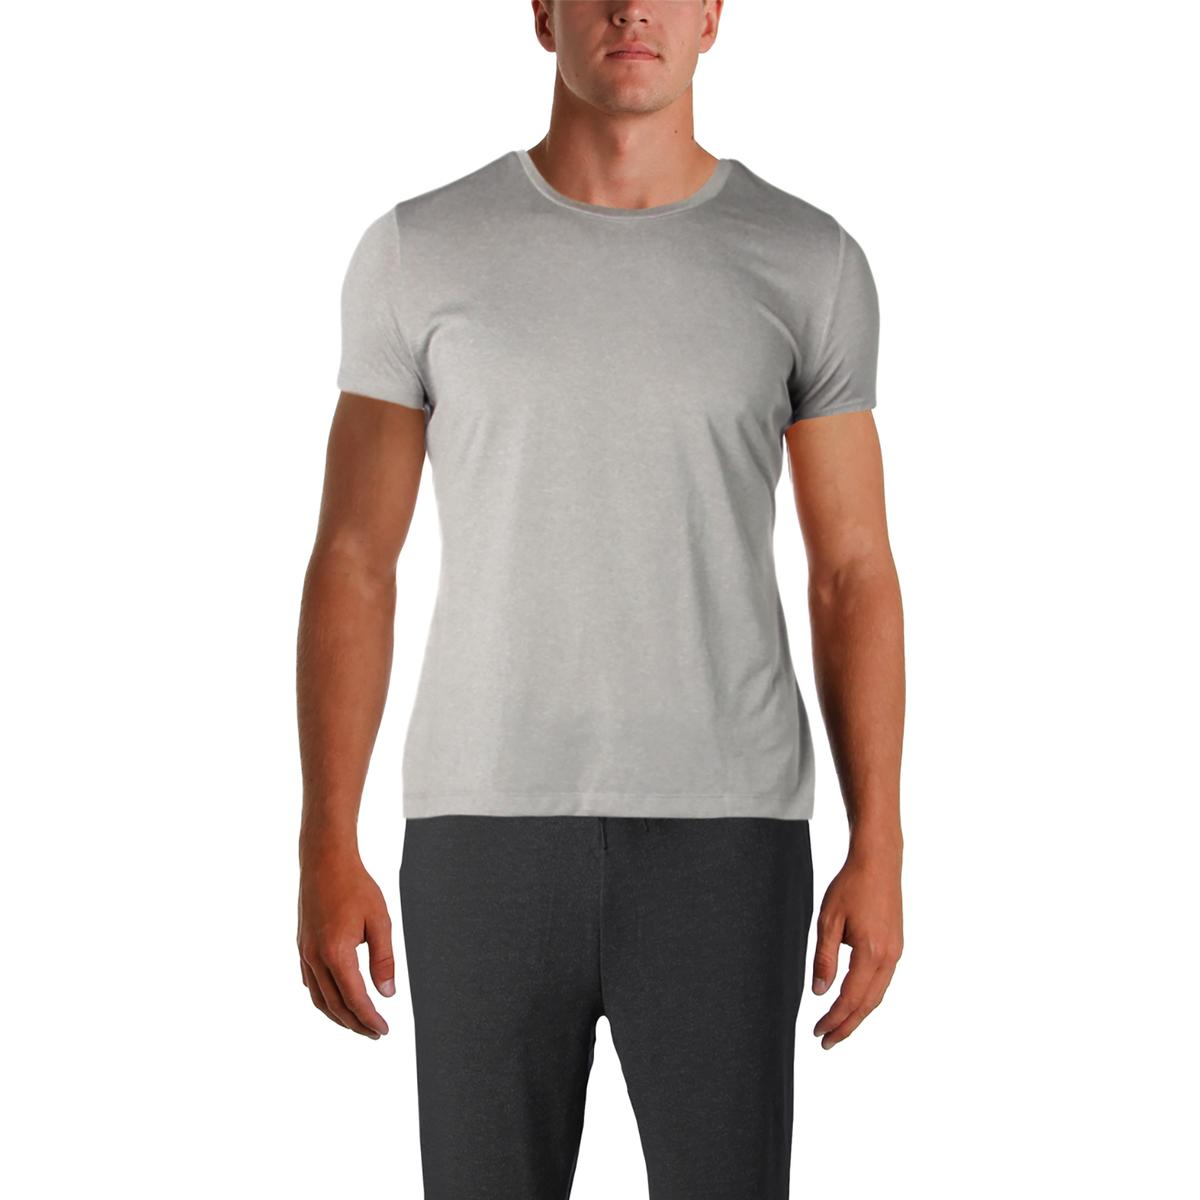 1db9e02c Details about Champion Mens Gray Fitness Running Gym T-Shirt Top L BHFO 9630